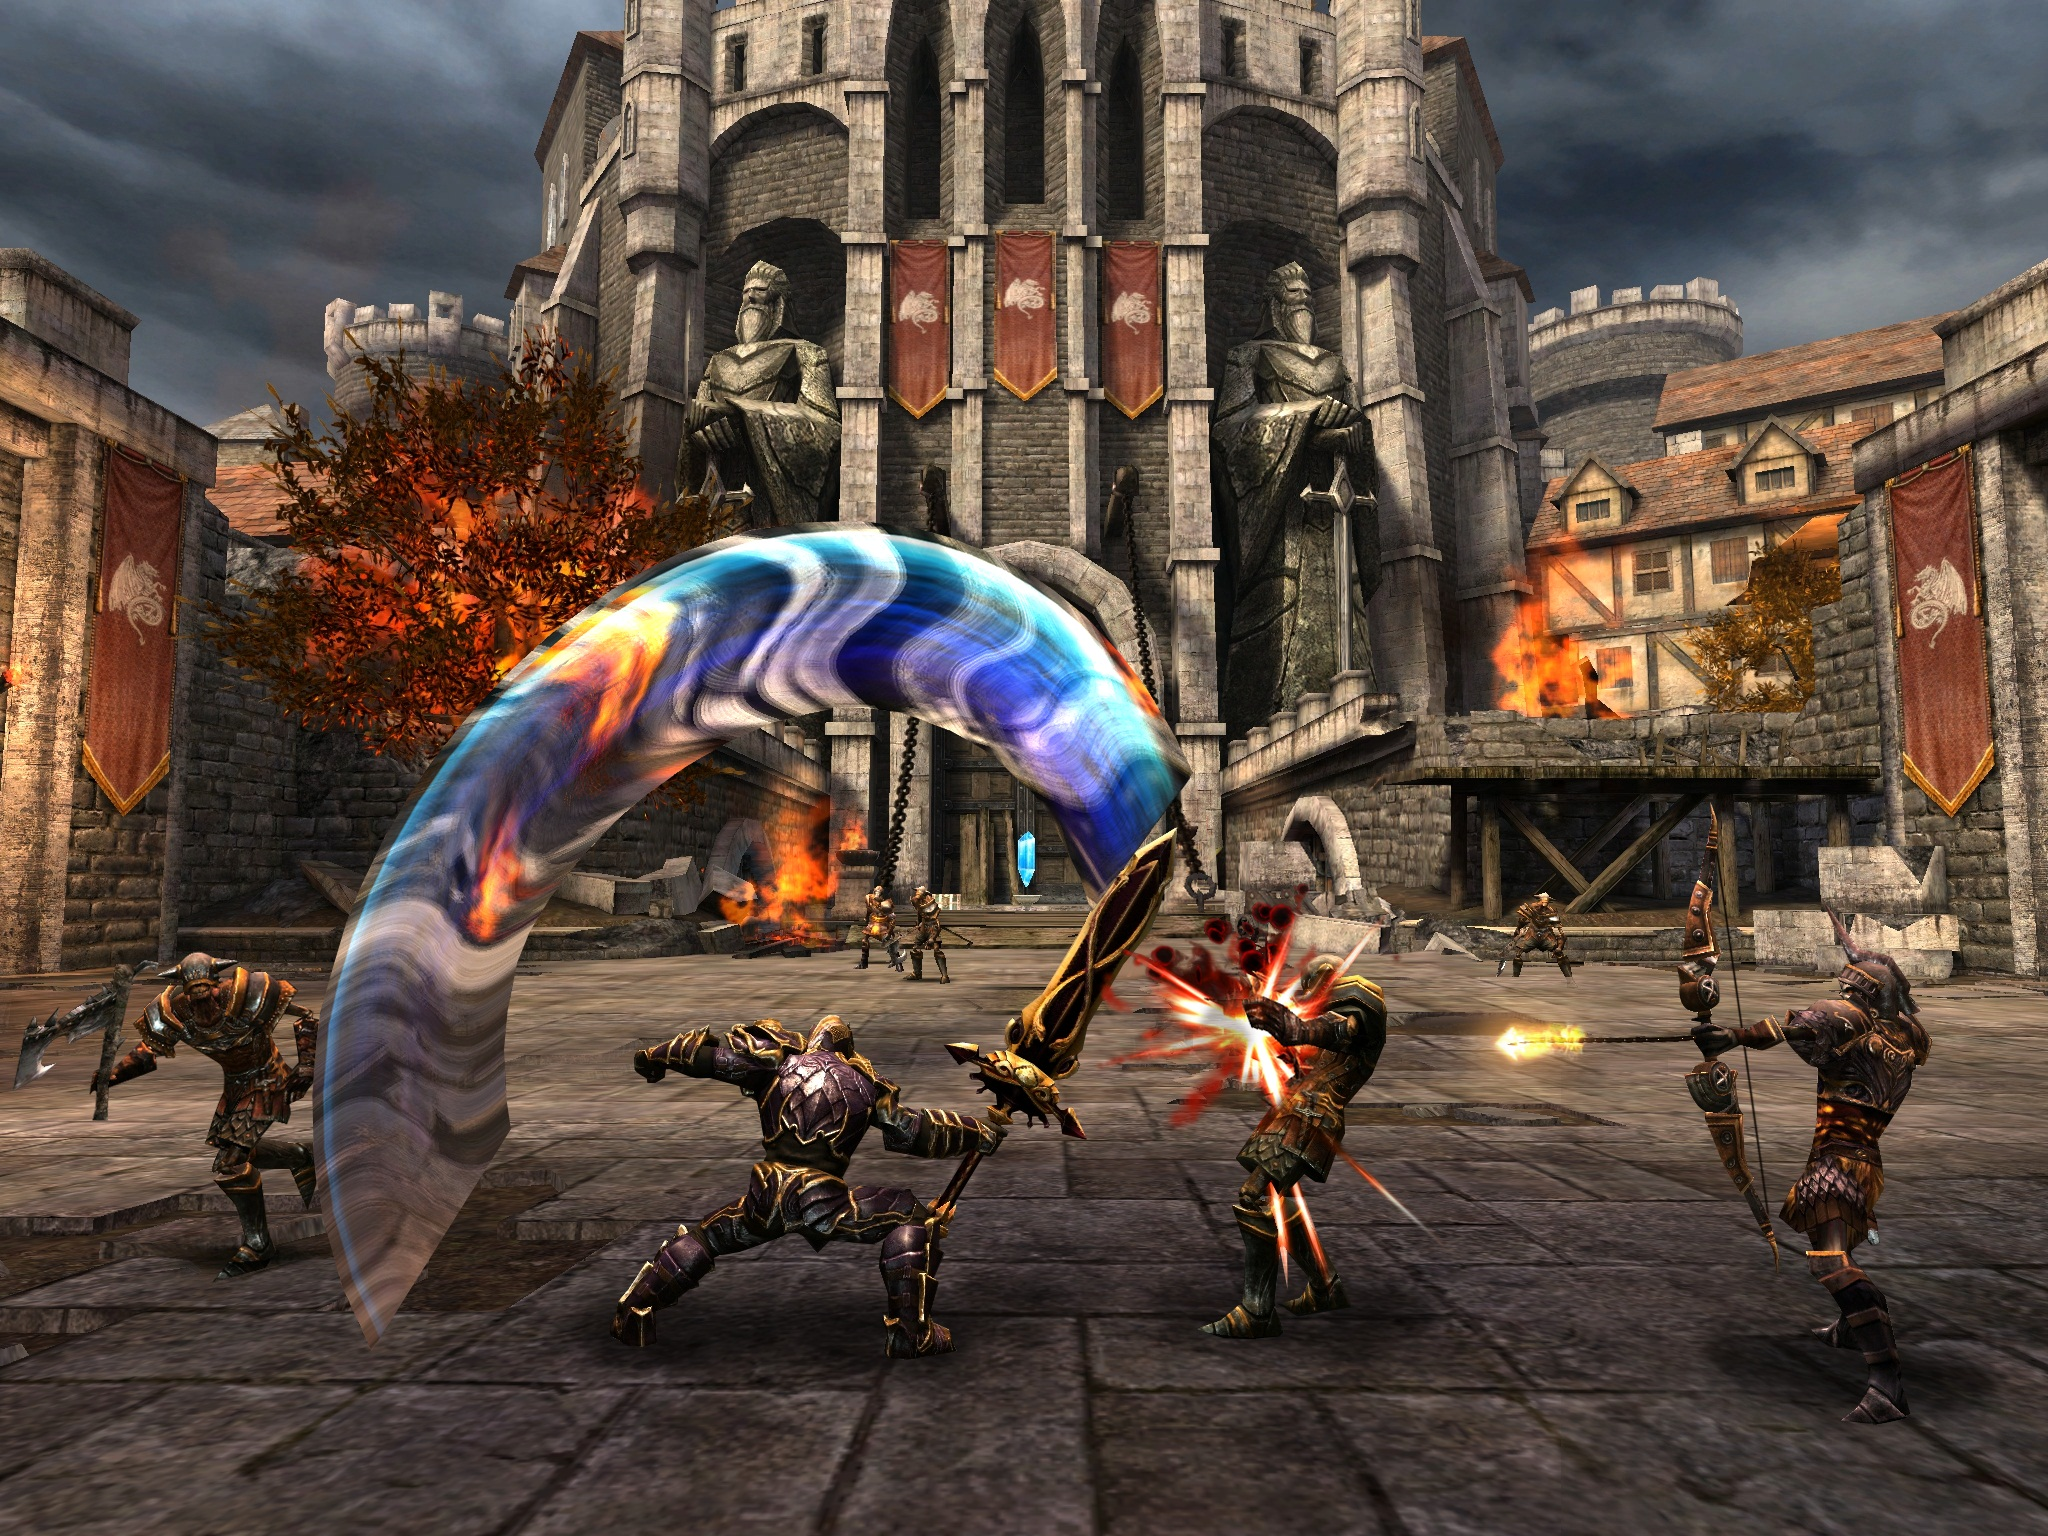 Hands on with Gameloft's Unreal game Wild Blood